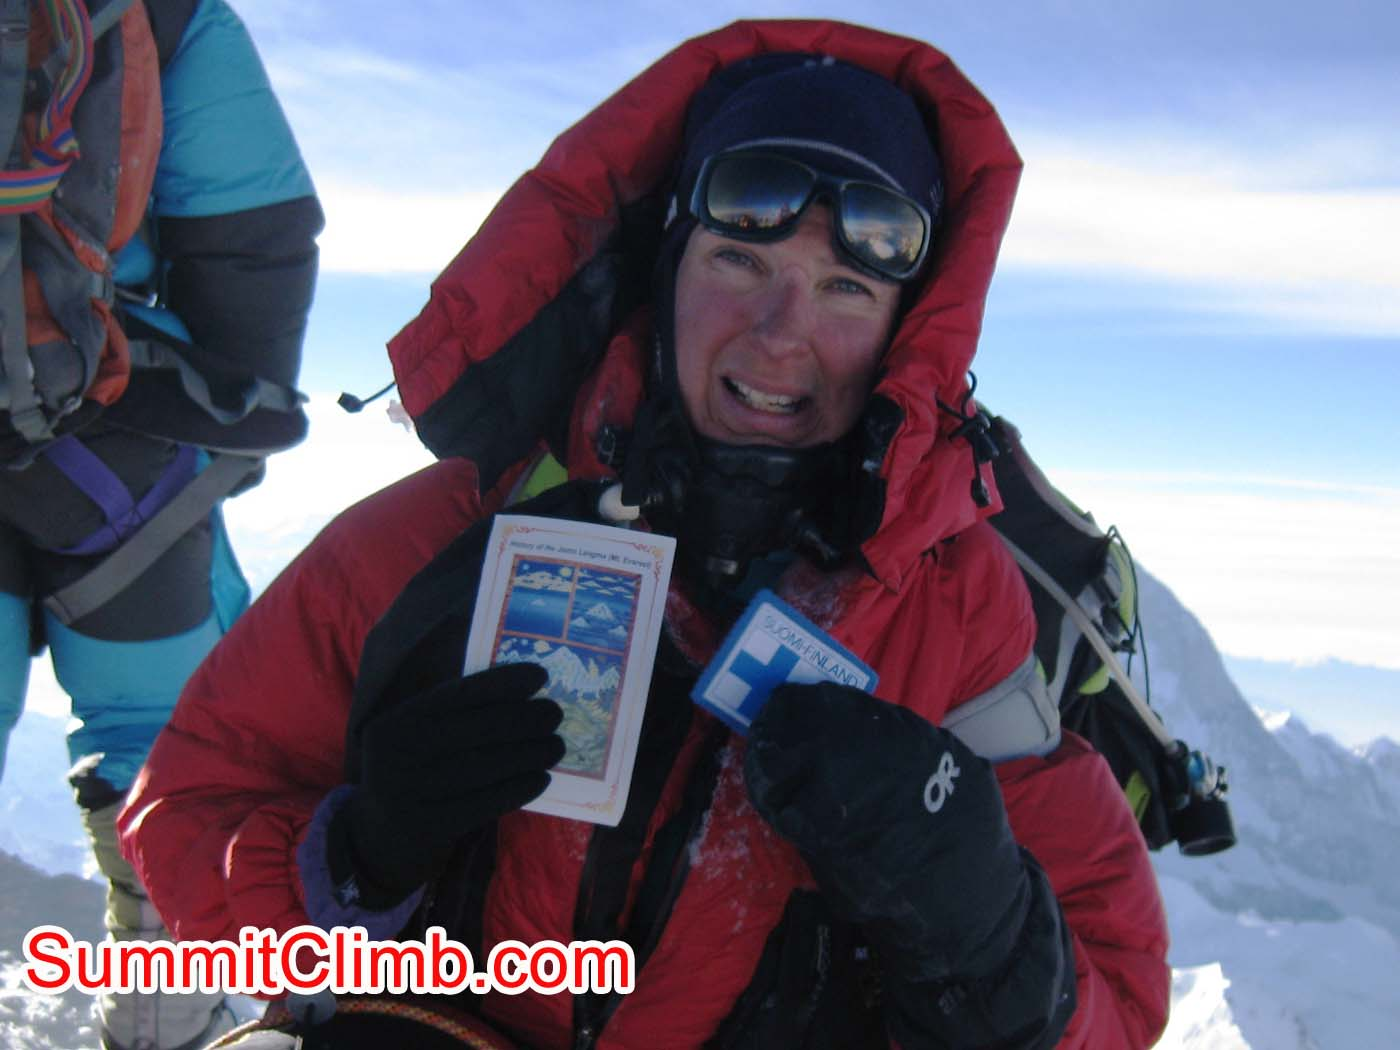 Mia Graeffe on Summit of Everest - First Female from Finland to summit Everest from Tibet - Photo Mia Graeffe